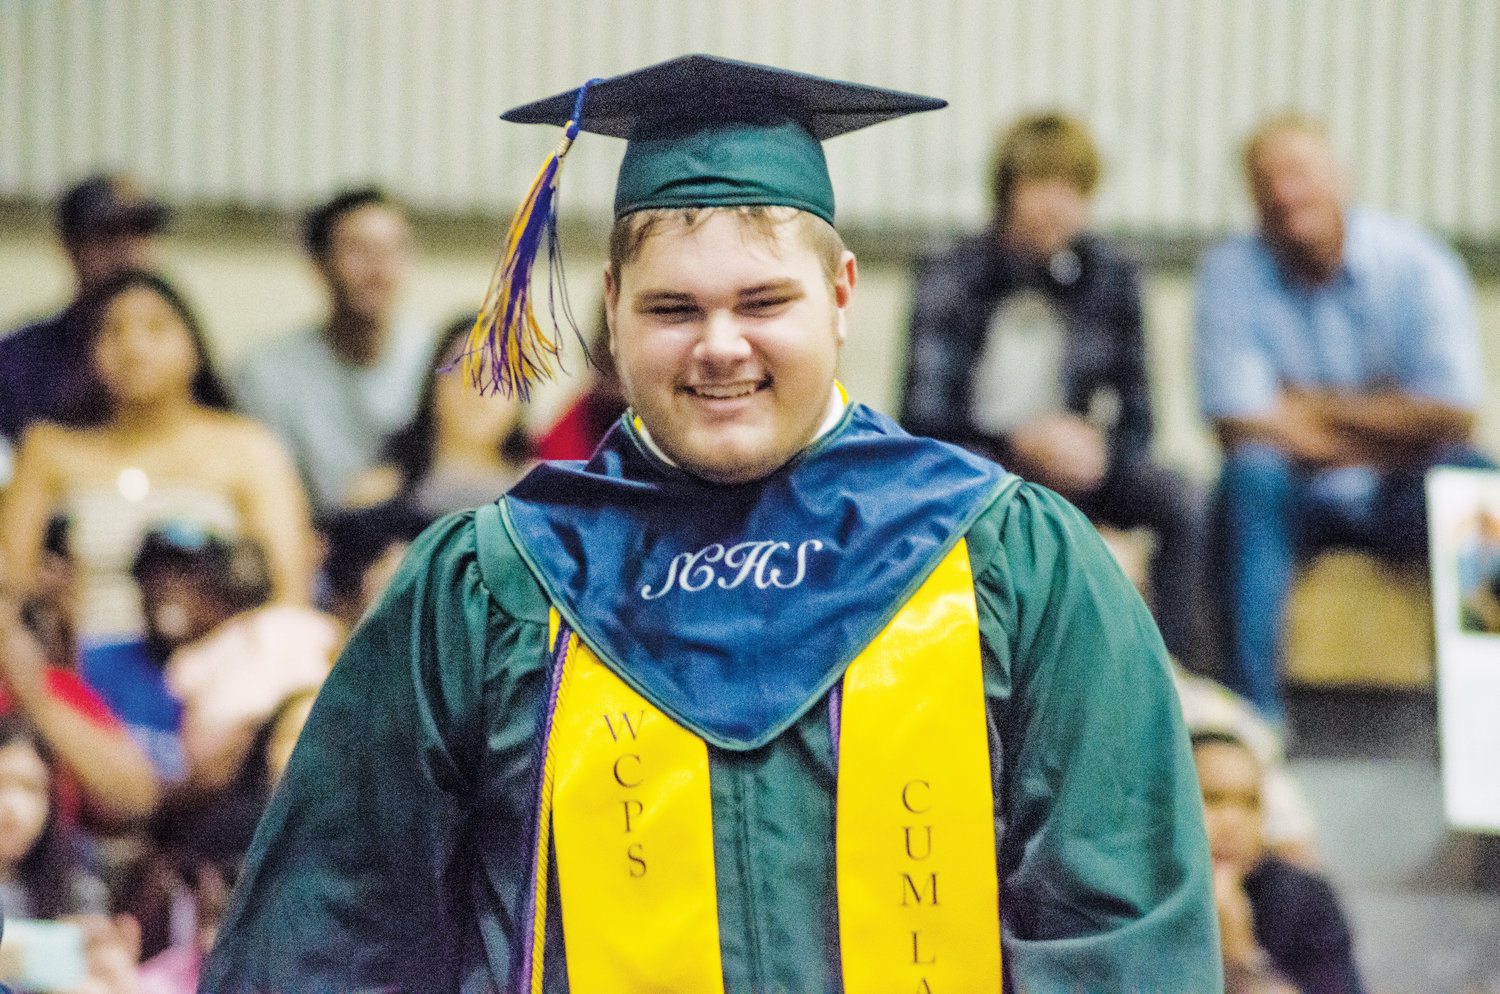 Aubrey Pollock smiles as he receives his diploma at Spring Creek's graduation ceremony.